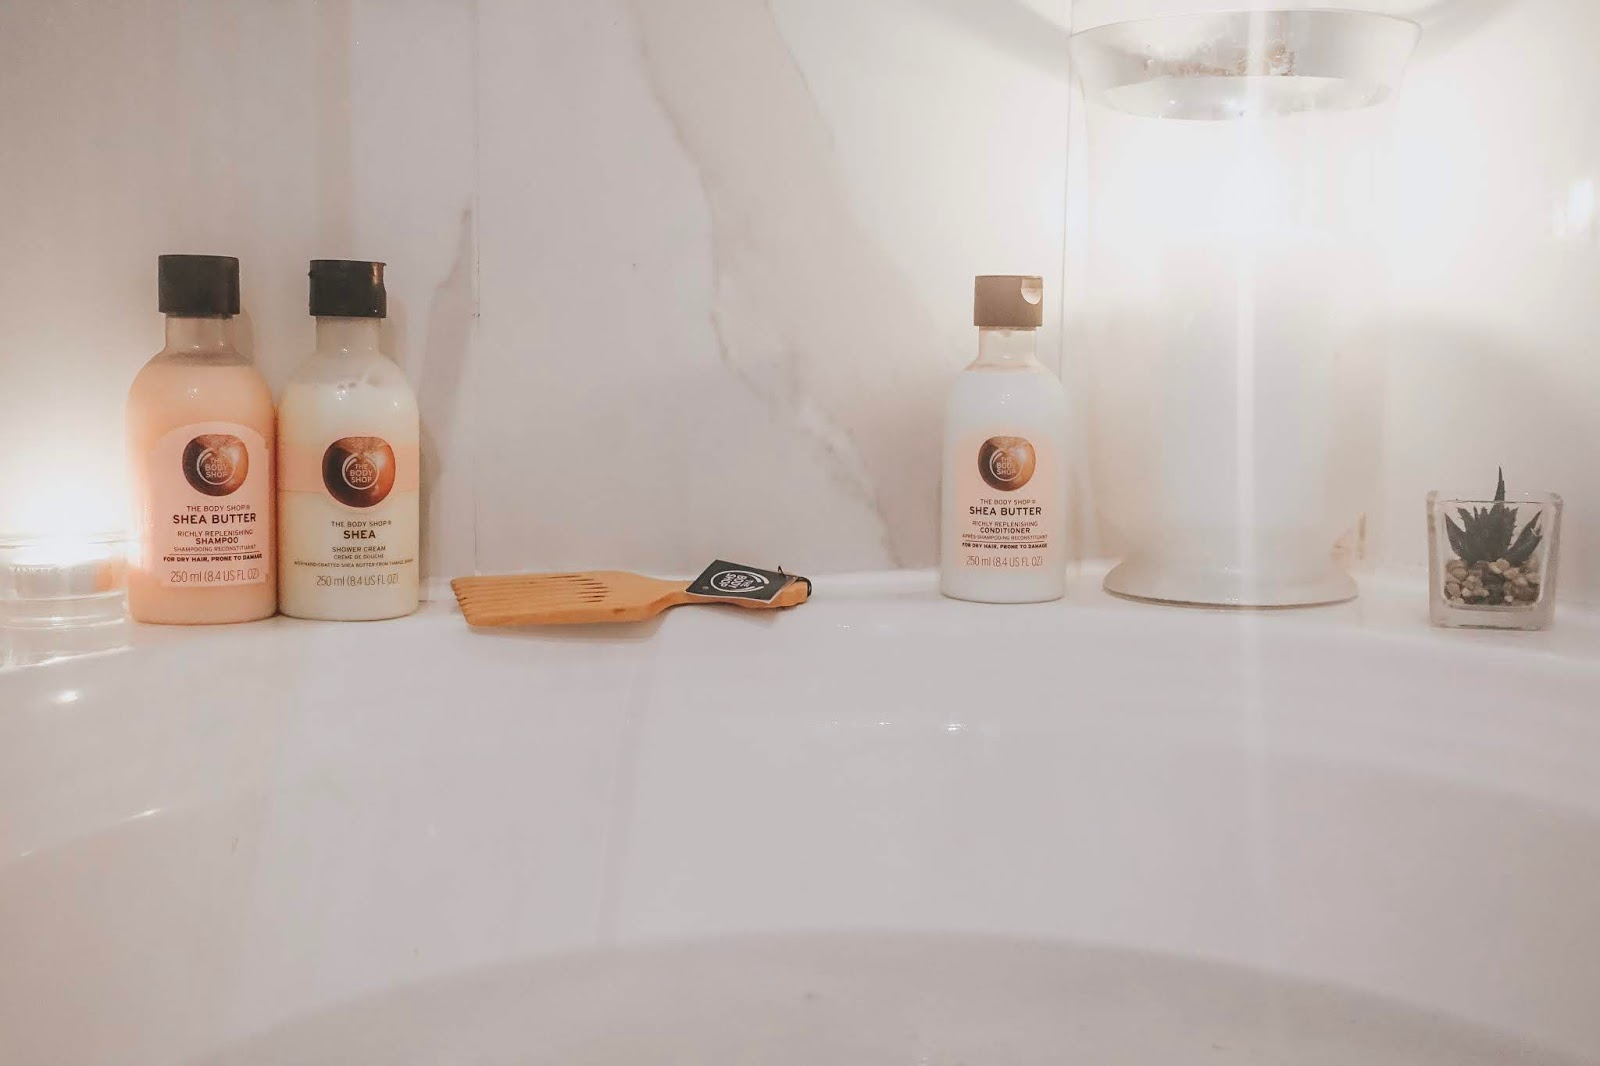 The Body Shop Shea Shampoo and Conditioner in a relaxing bath